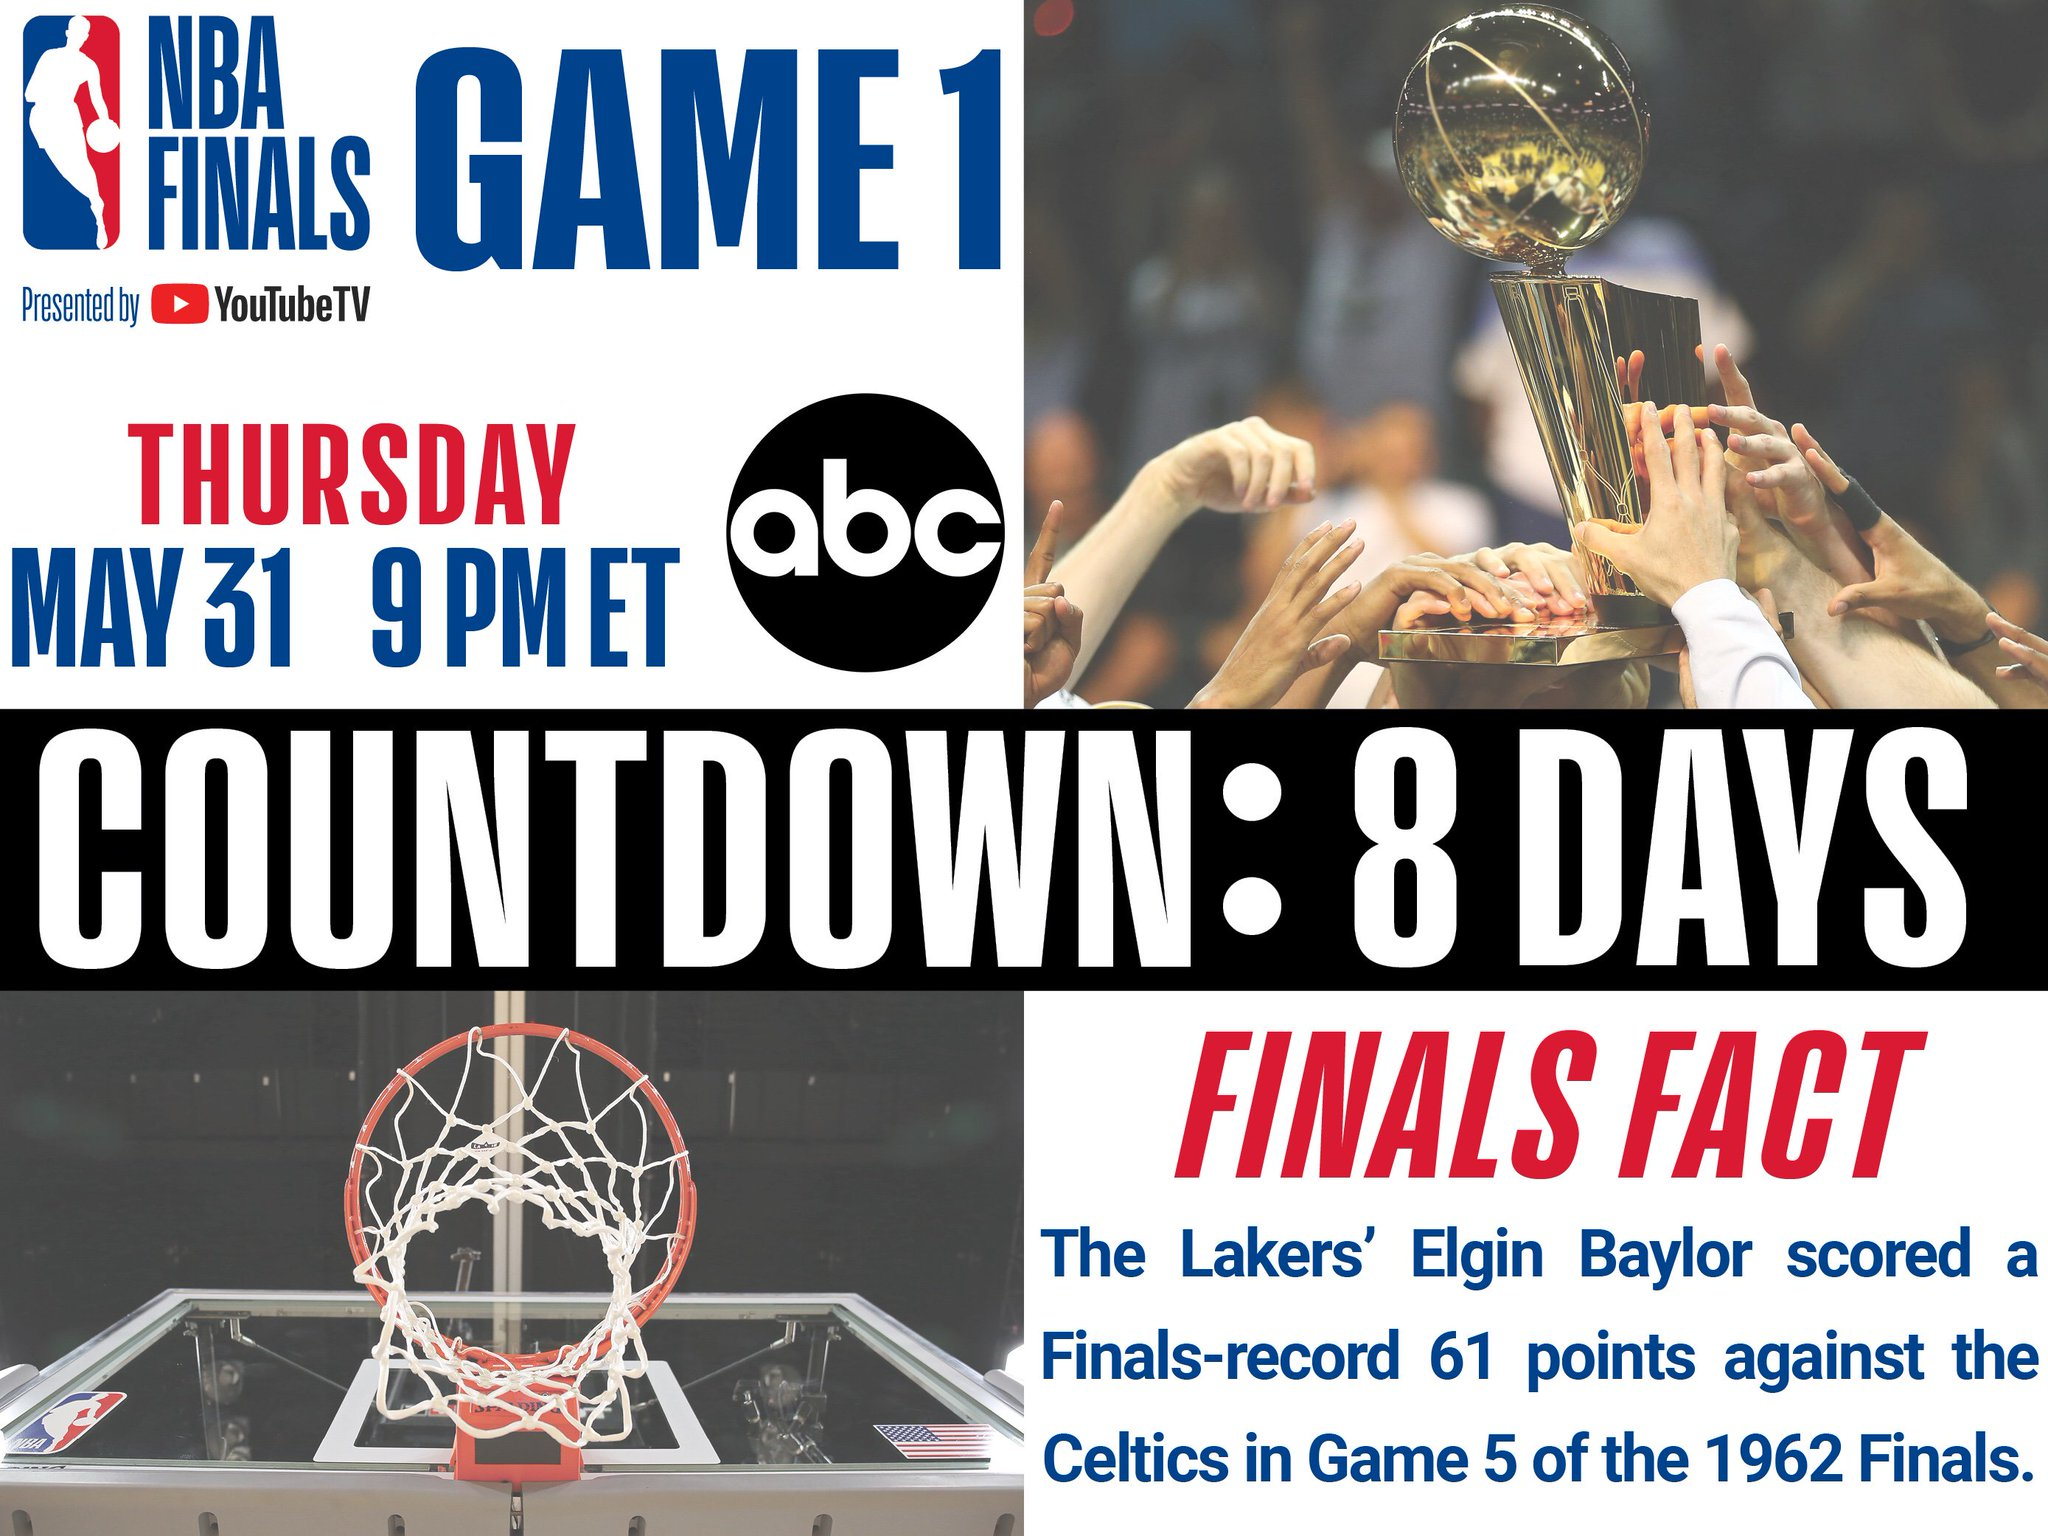 The 2018 #NBAFinals presented by @YouTubeTV tips off in 8 Days (5/31 #NBAonABC)! https://t.co/pIkJKnkjpb